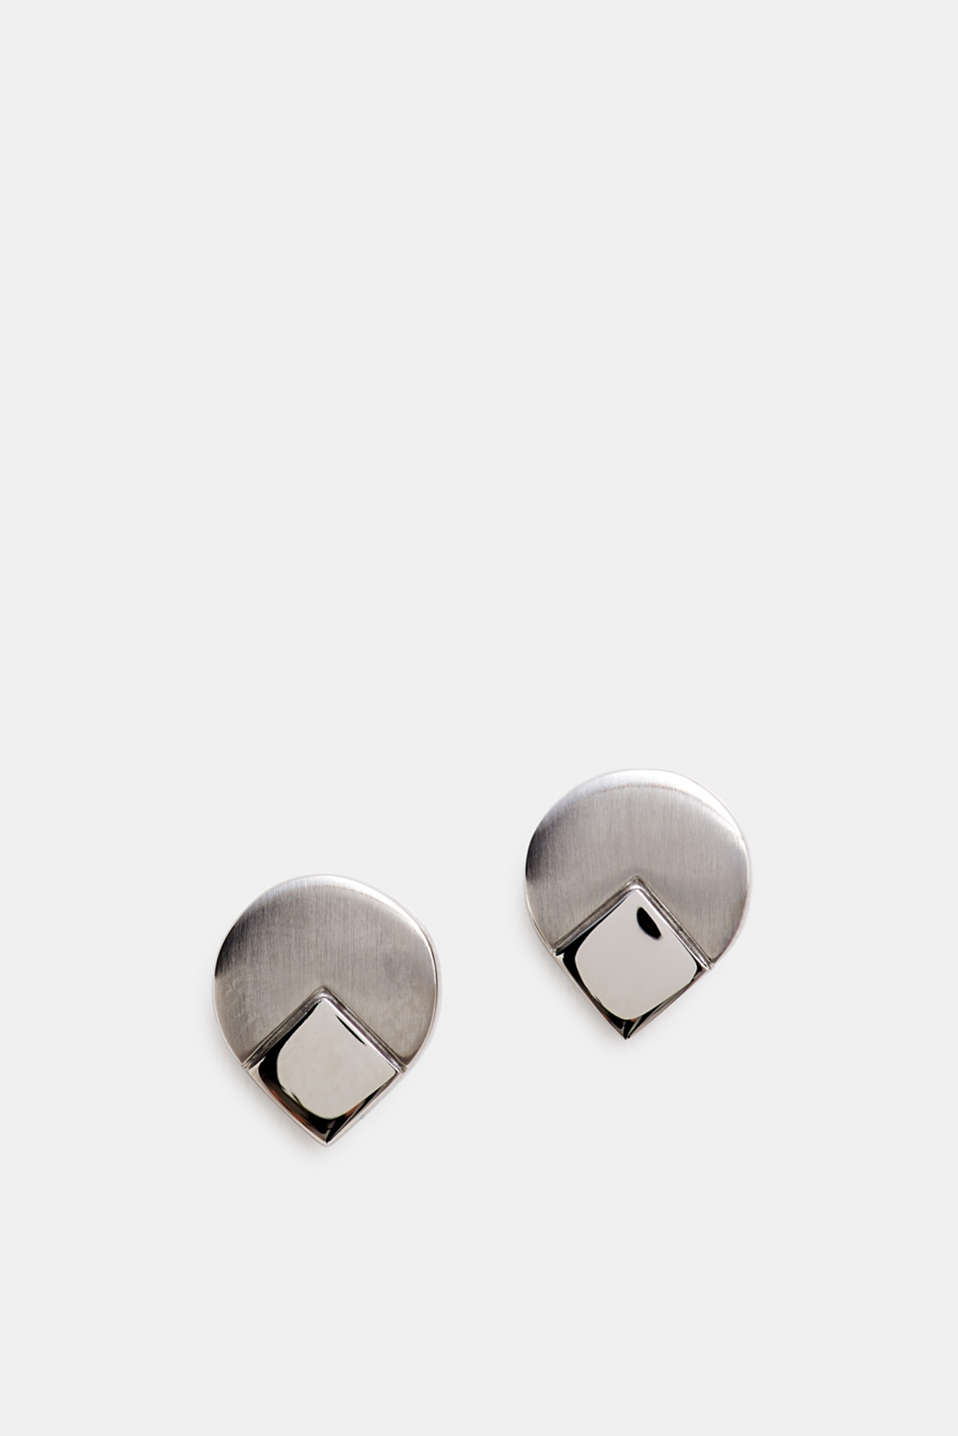 Esprit - Teardrop stud earrings made of stainless steel